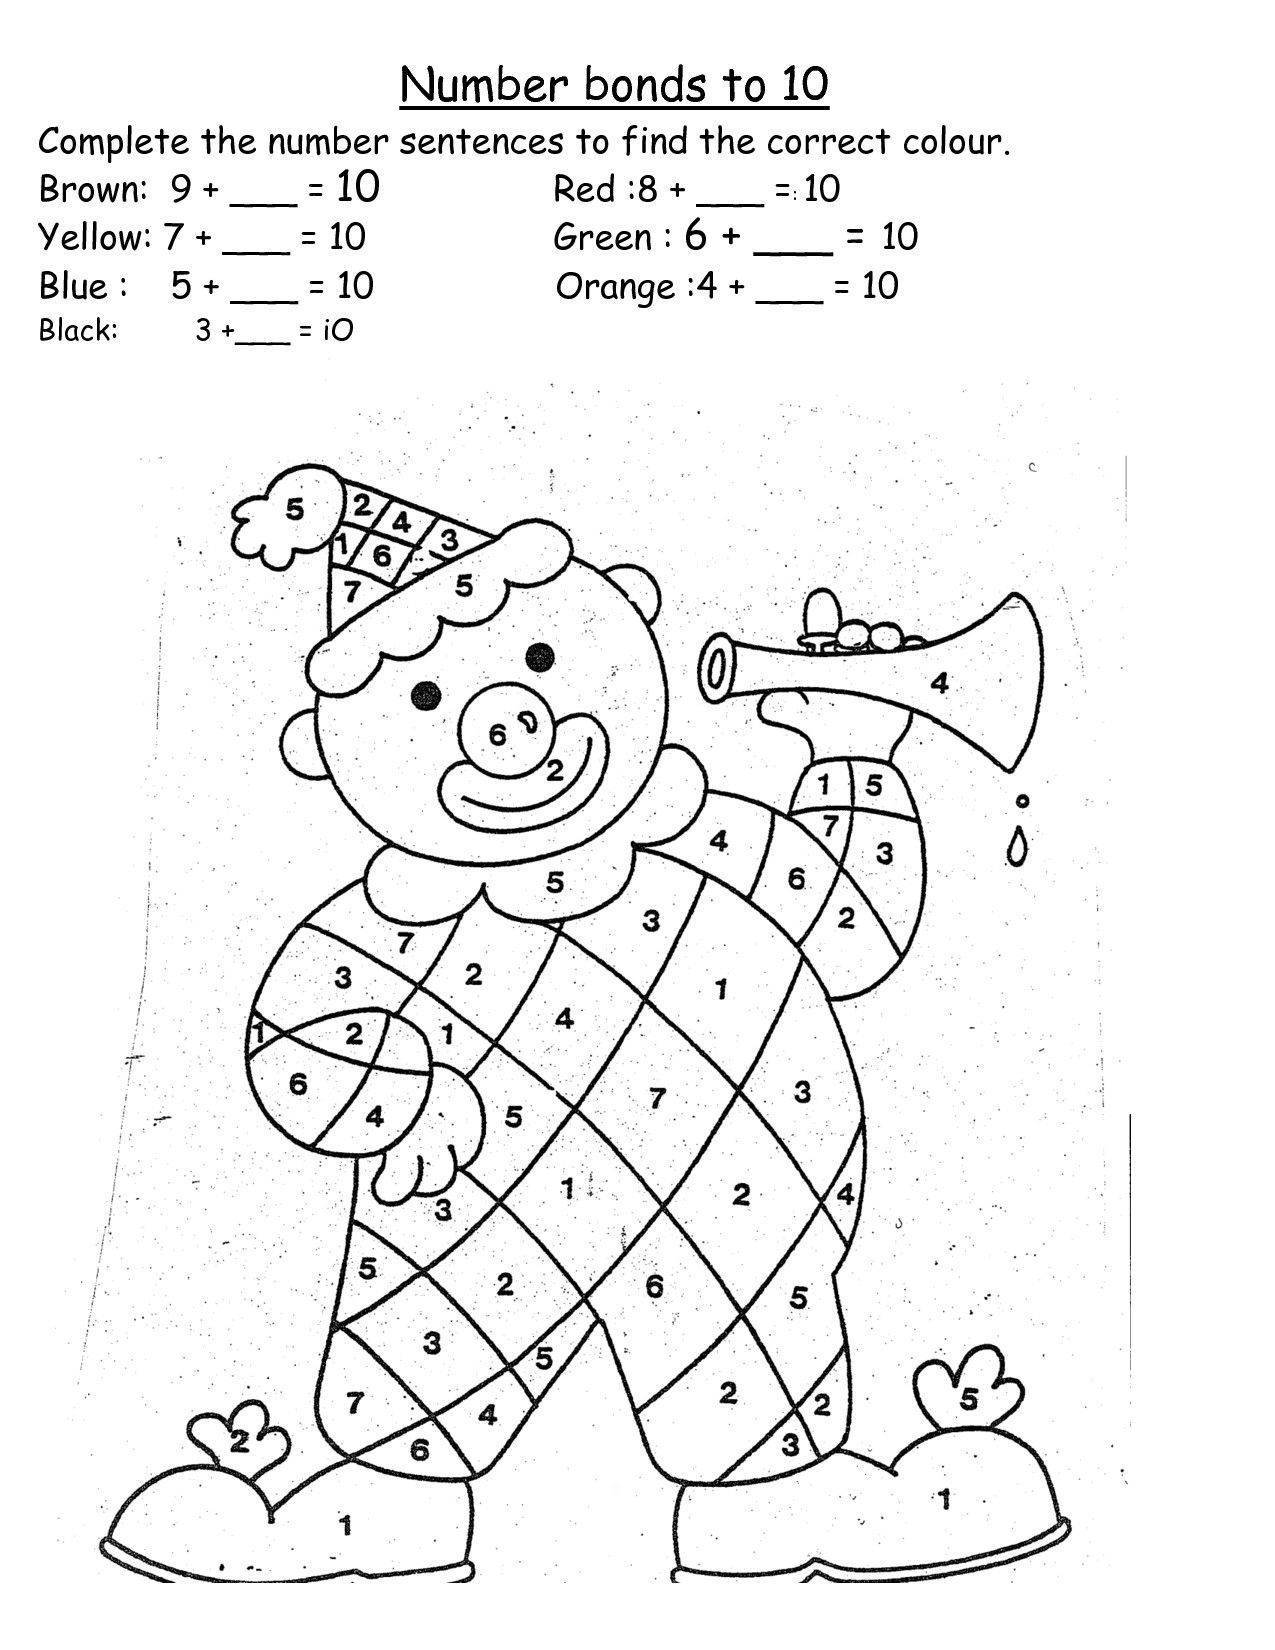 Number Bonds Worksheets 1st Grade 4 Free Math Worksheets First Grade 1 Addition Number Bonds